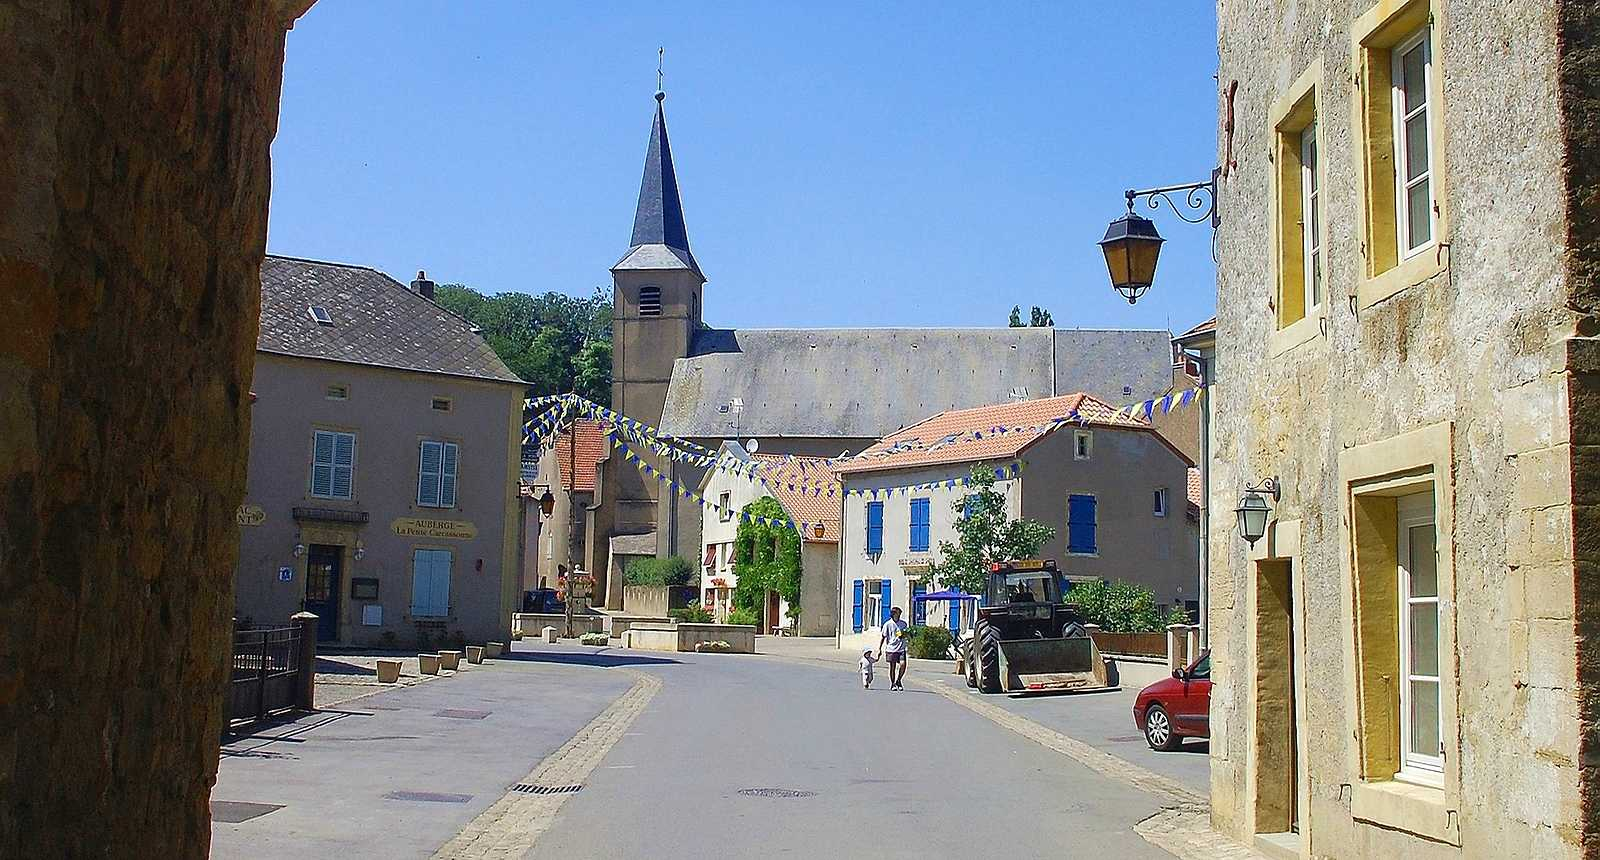 Le village de Rodemack